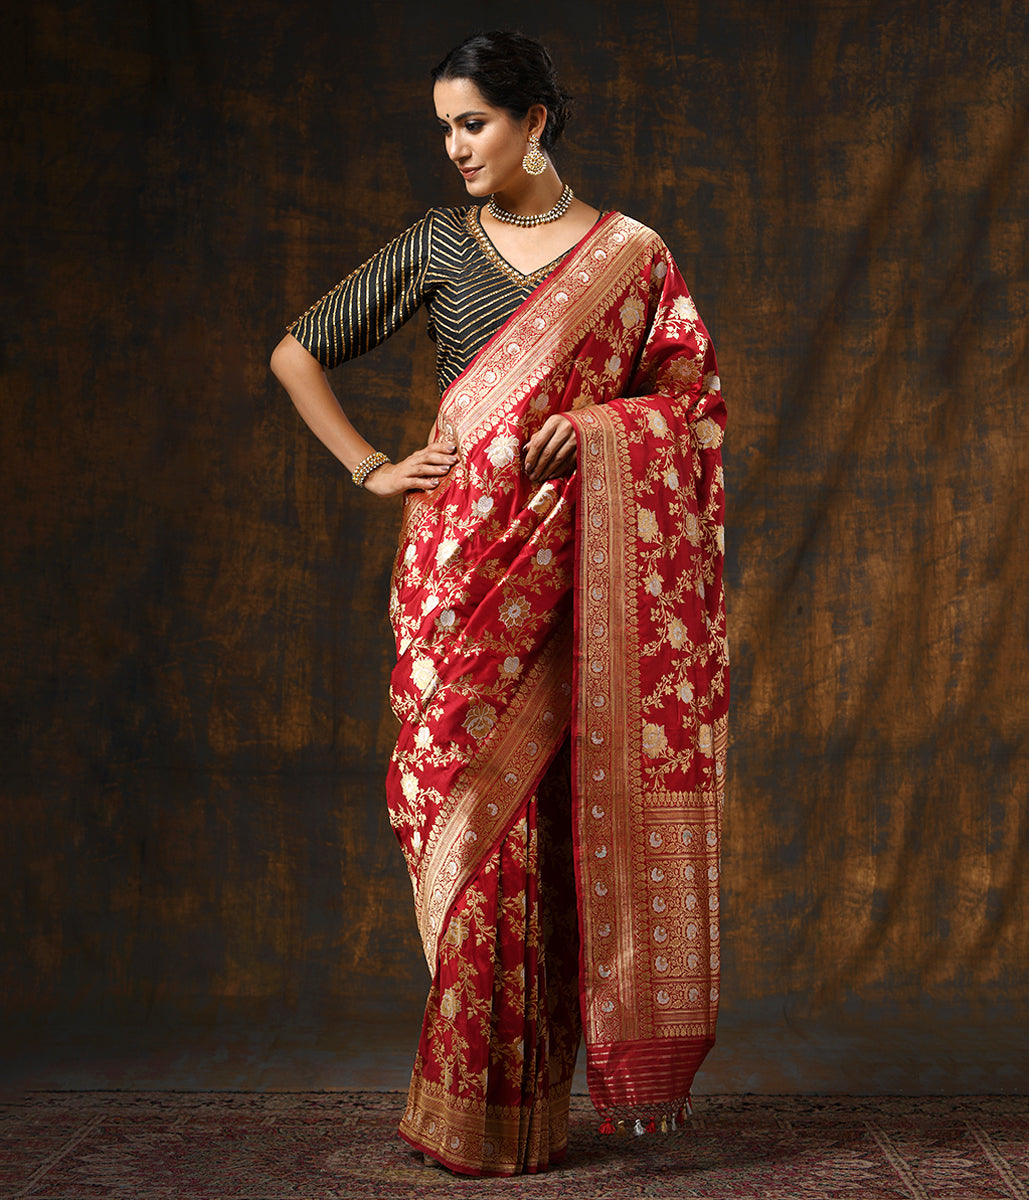 Handwoven Red Sona Rupa Floral Jangla